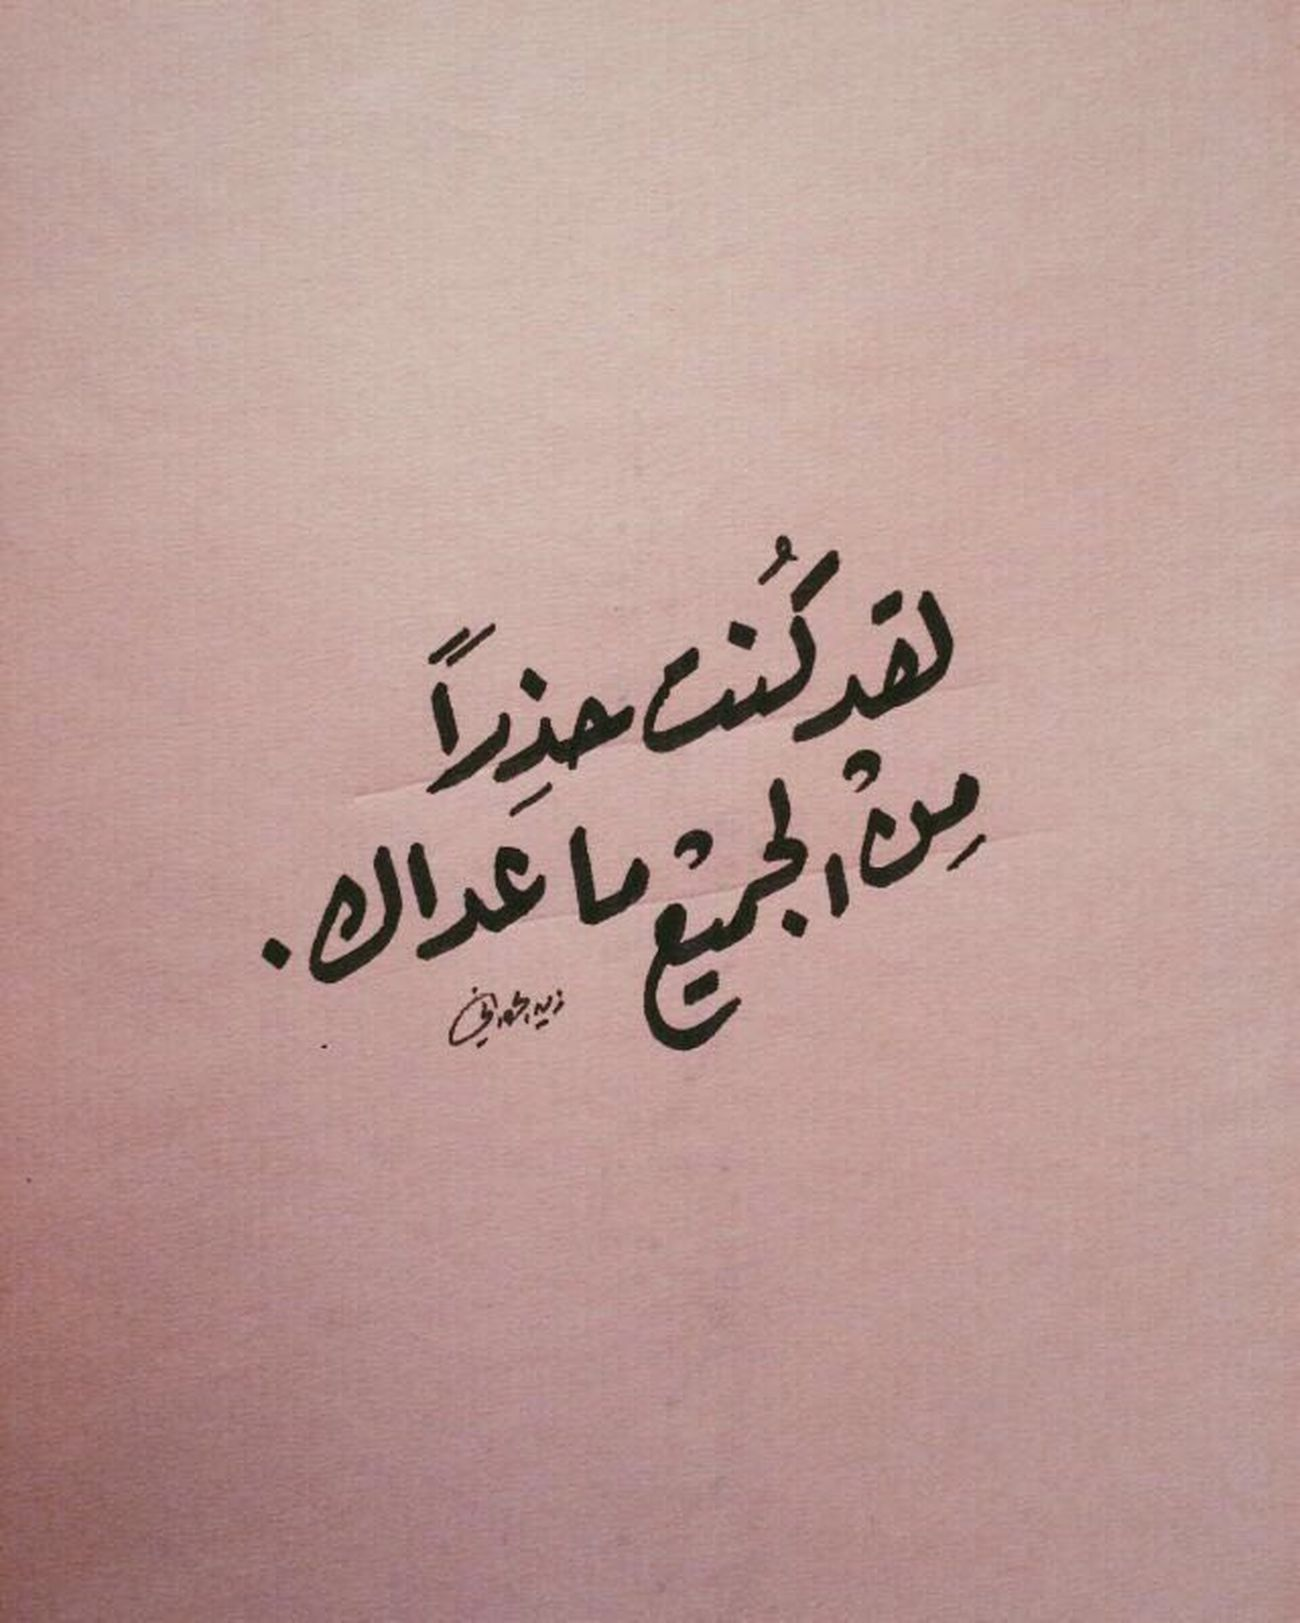 I was careful with everyone,but not with you. - تصميمي التعليق يهمني اكثر من الايك  Iraq . Baghdad